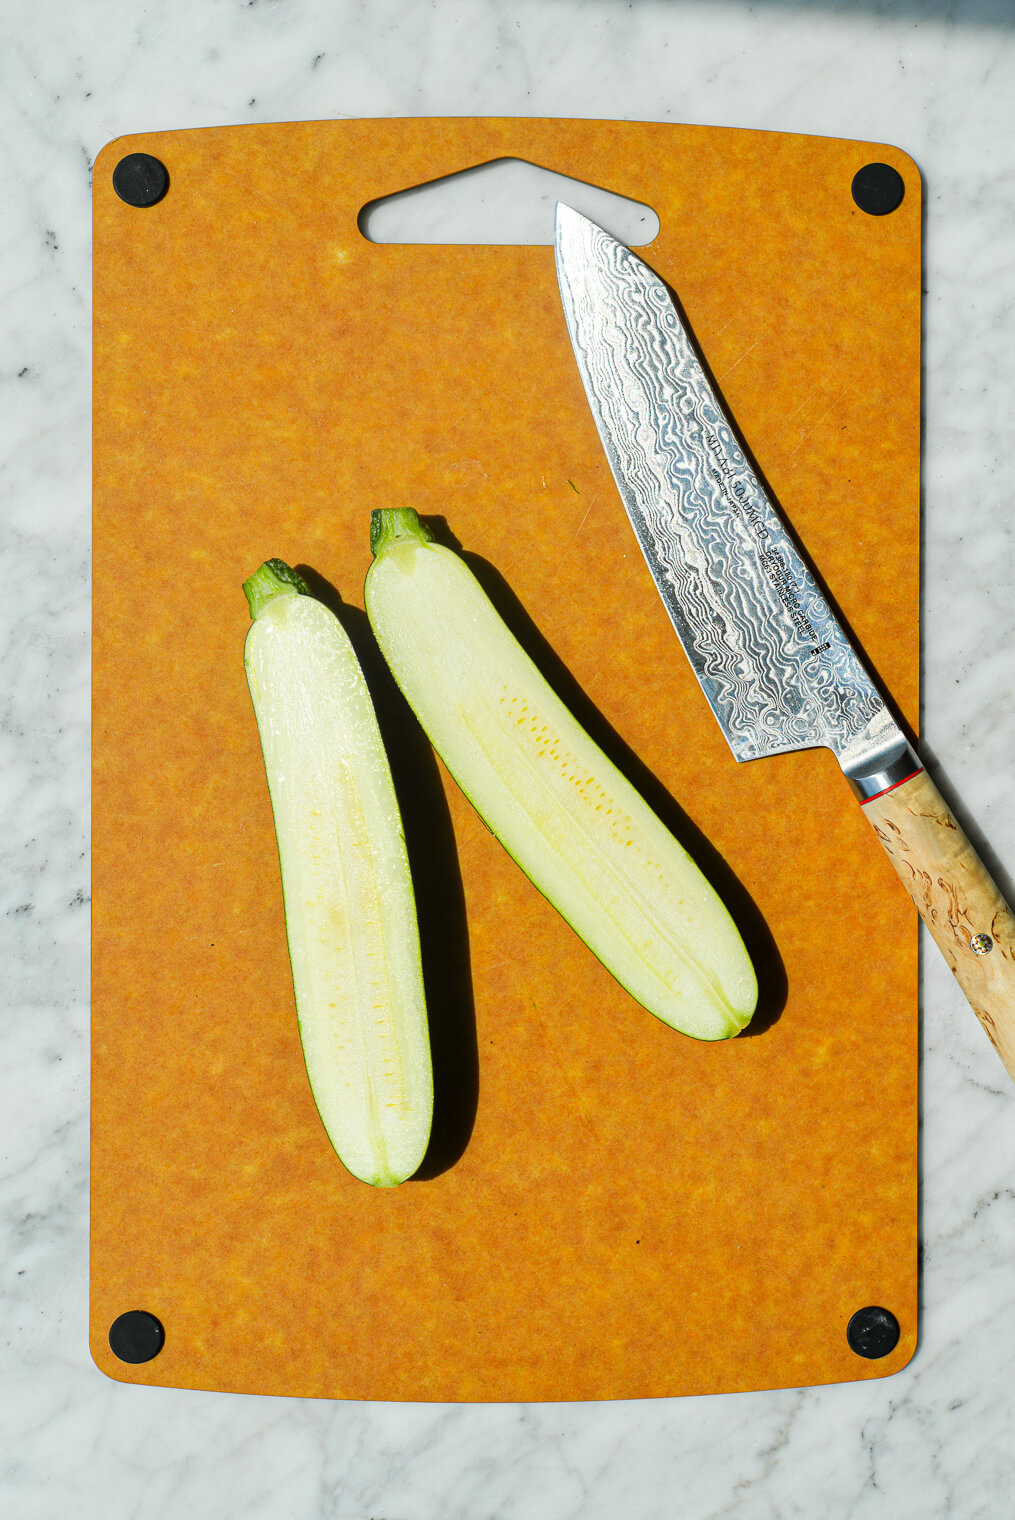 a cutting board with a raw halved zucchini sitting next to a knife